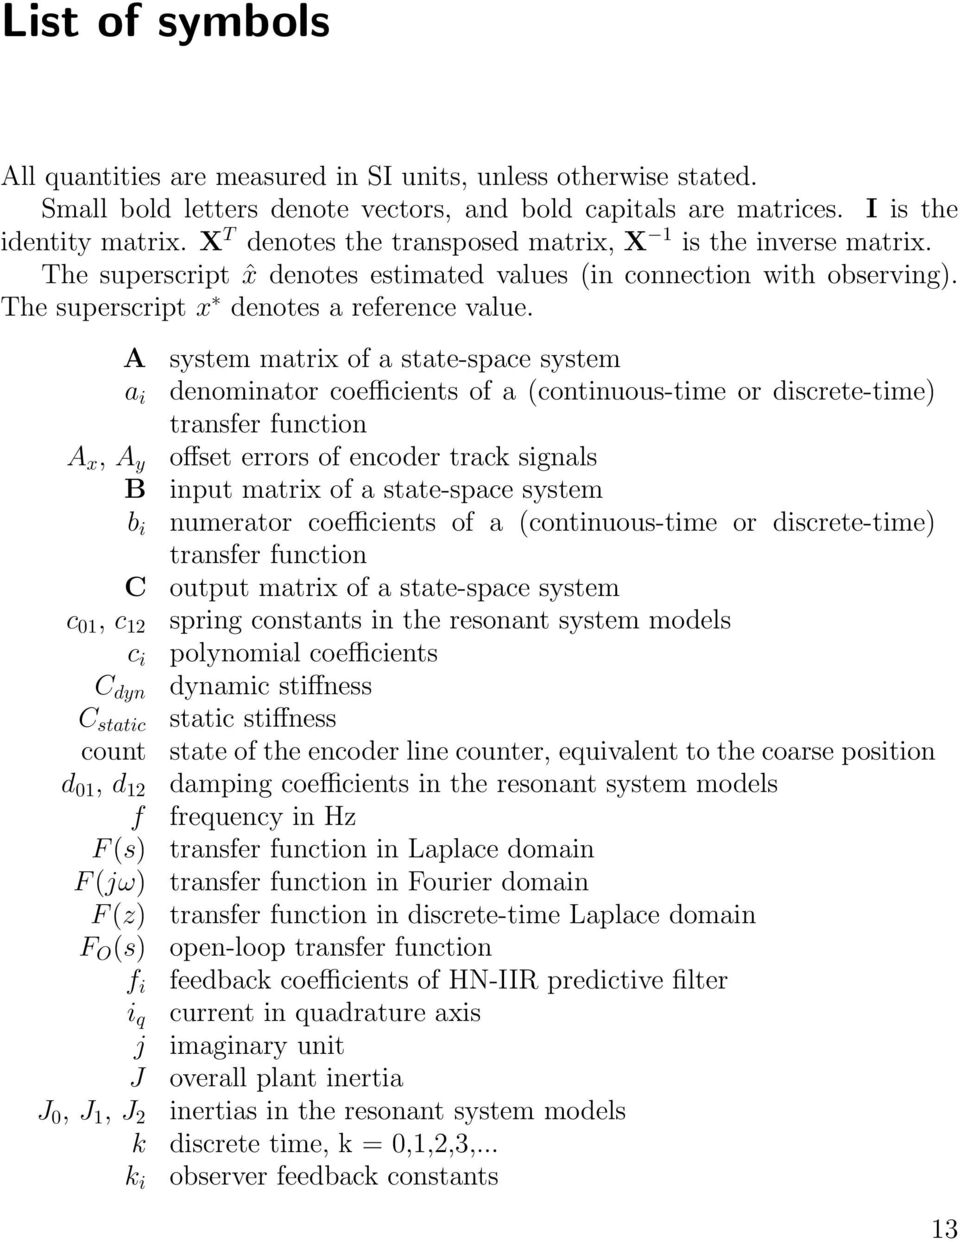 A system matrix of a state-space system a i denominator coefficients of a (continuous-time or discrete-time) transfer function A x, A y offset errors of encoder track signals B input matrix of a